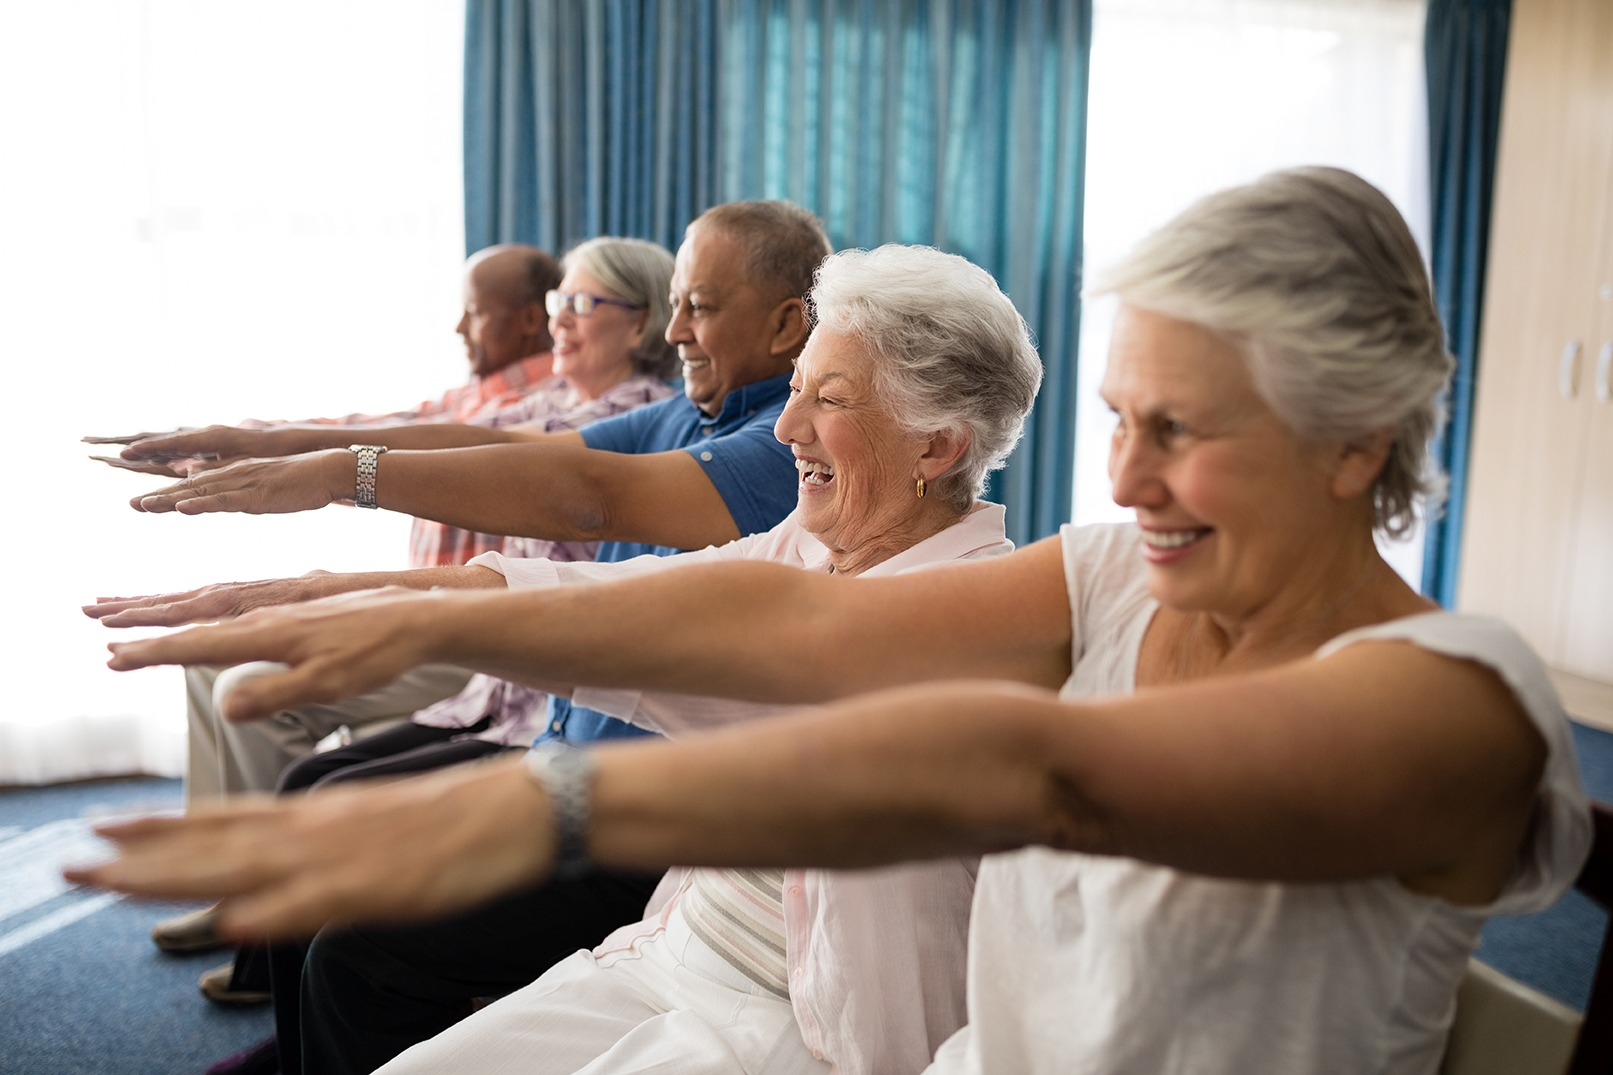 Cheerful senior people exercising with arms raised. Covenant Care